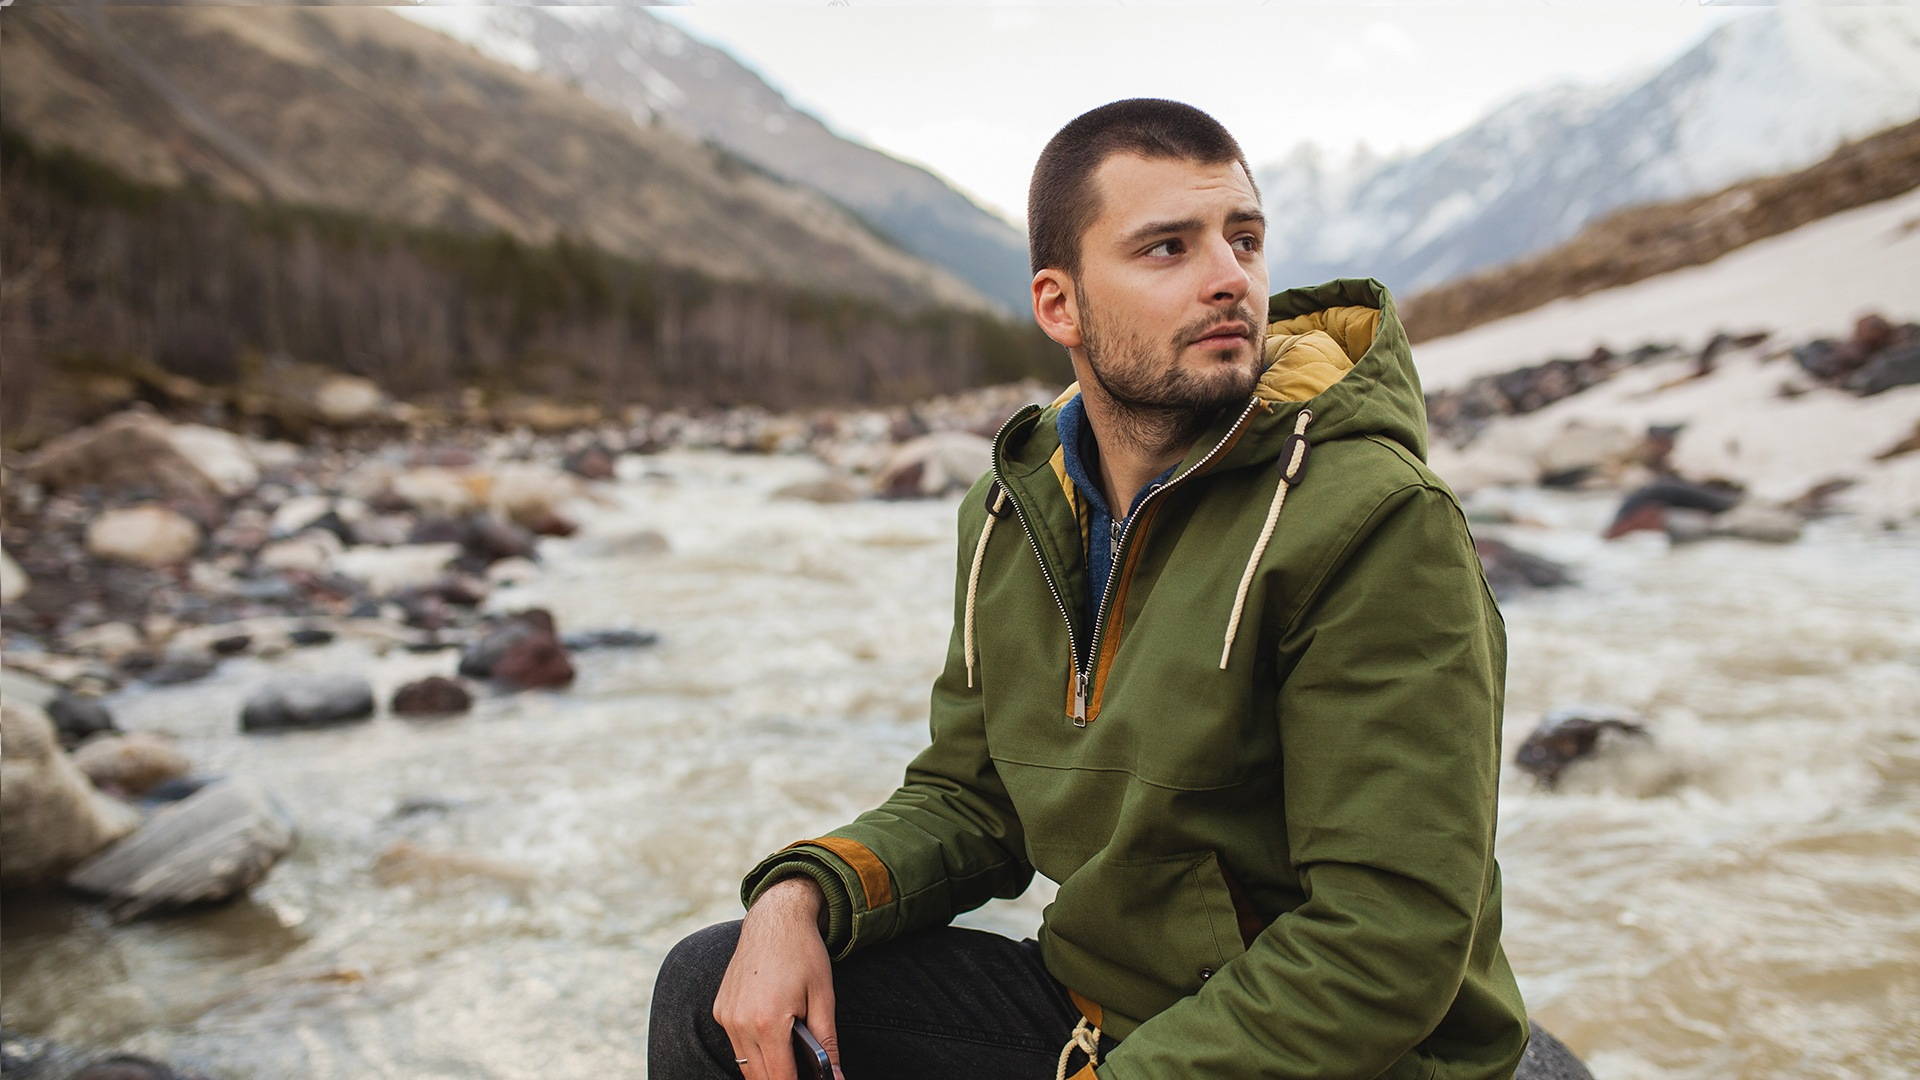 To know about the bulk winter jackets and long overcoat men's manufacturers in India.